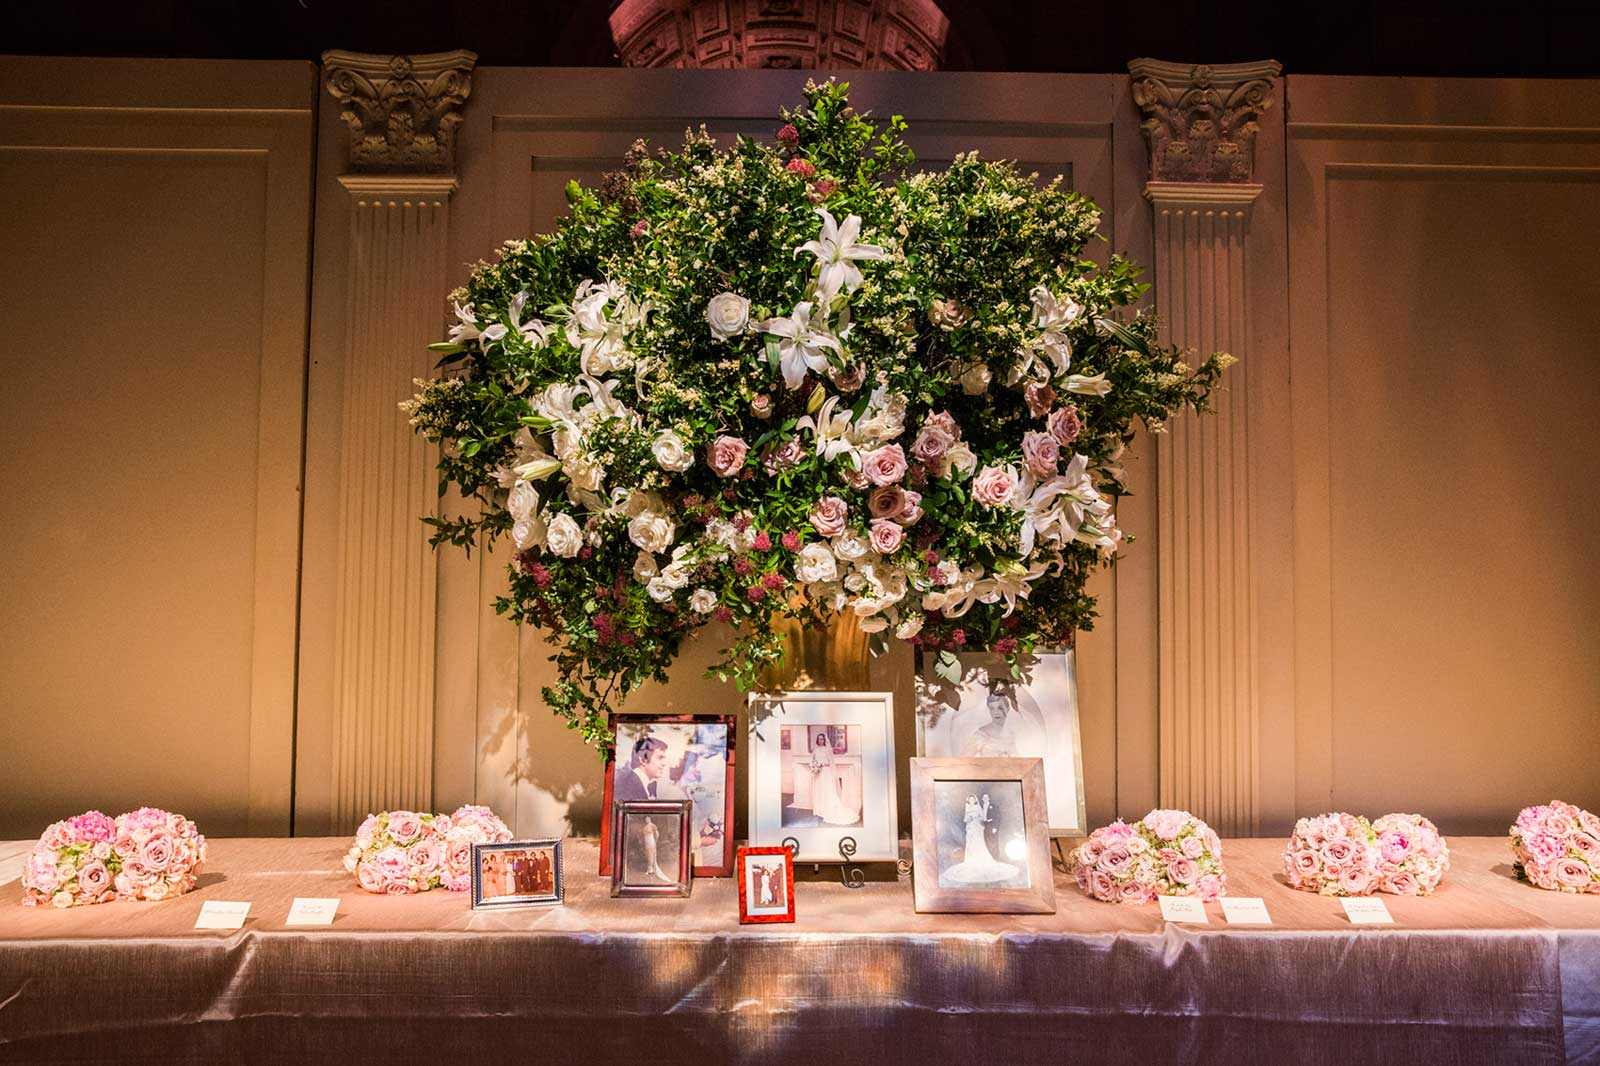 Escort card table with tree centerpiece and family photos in center of table